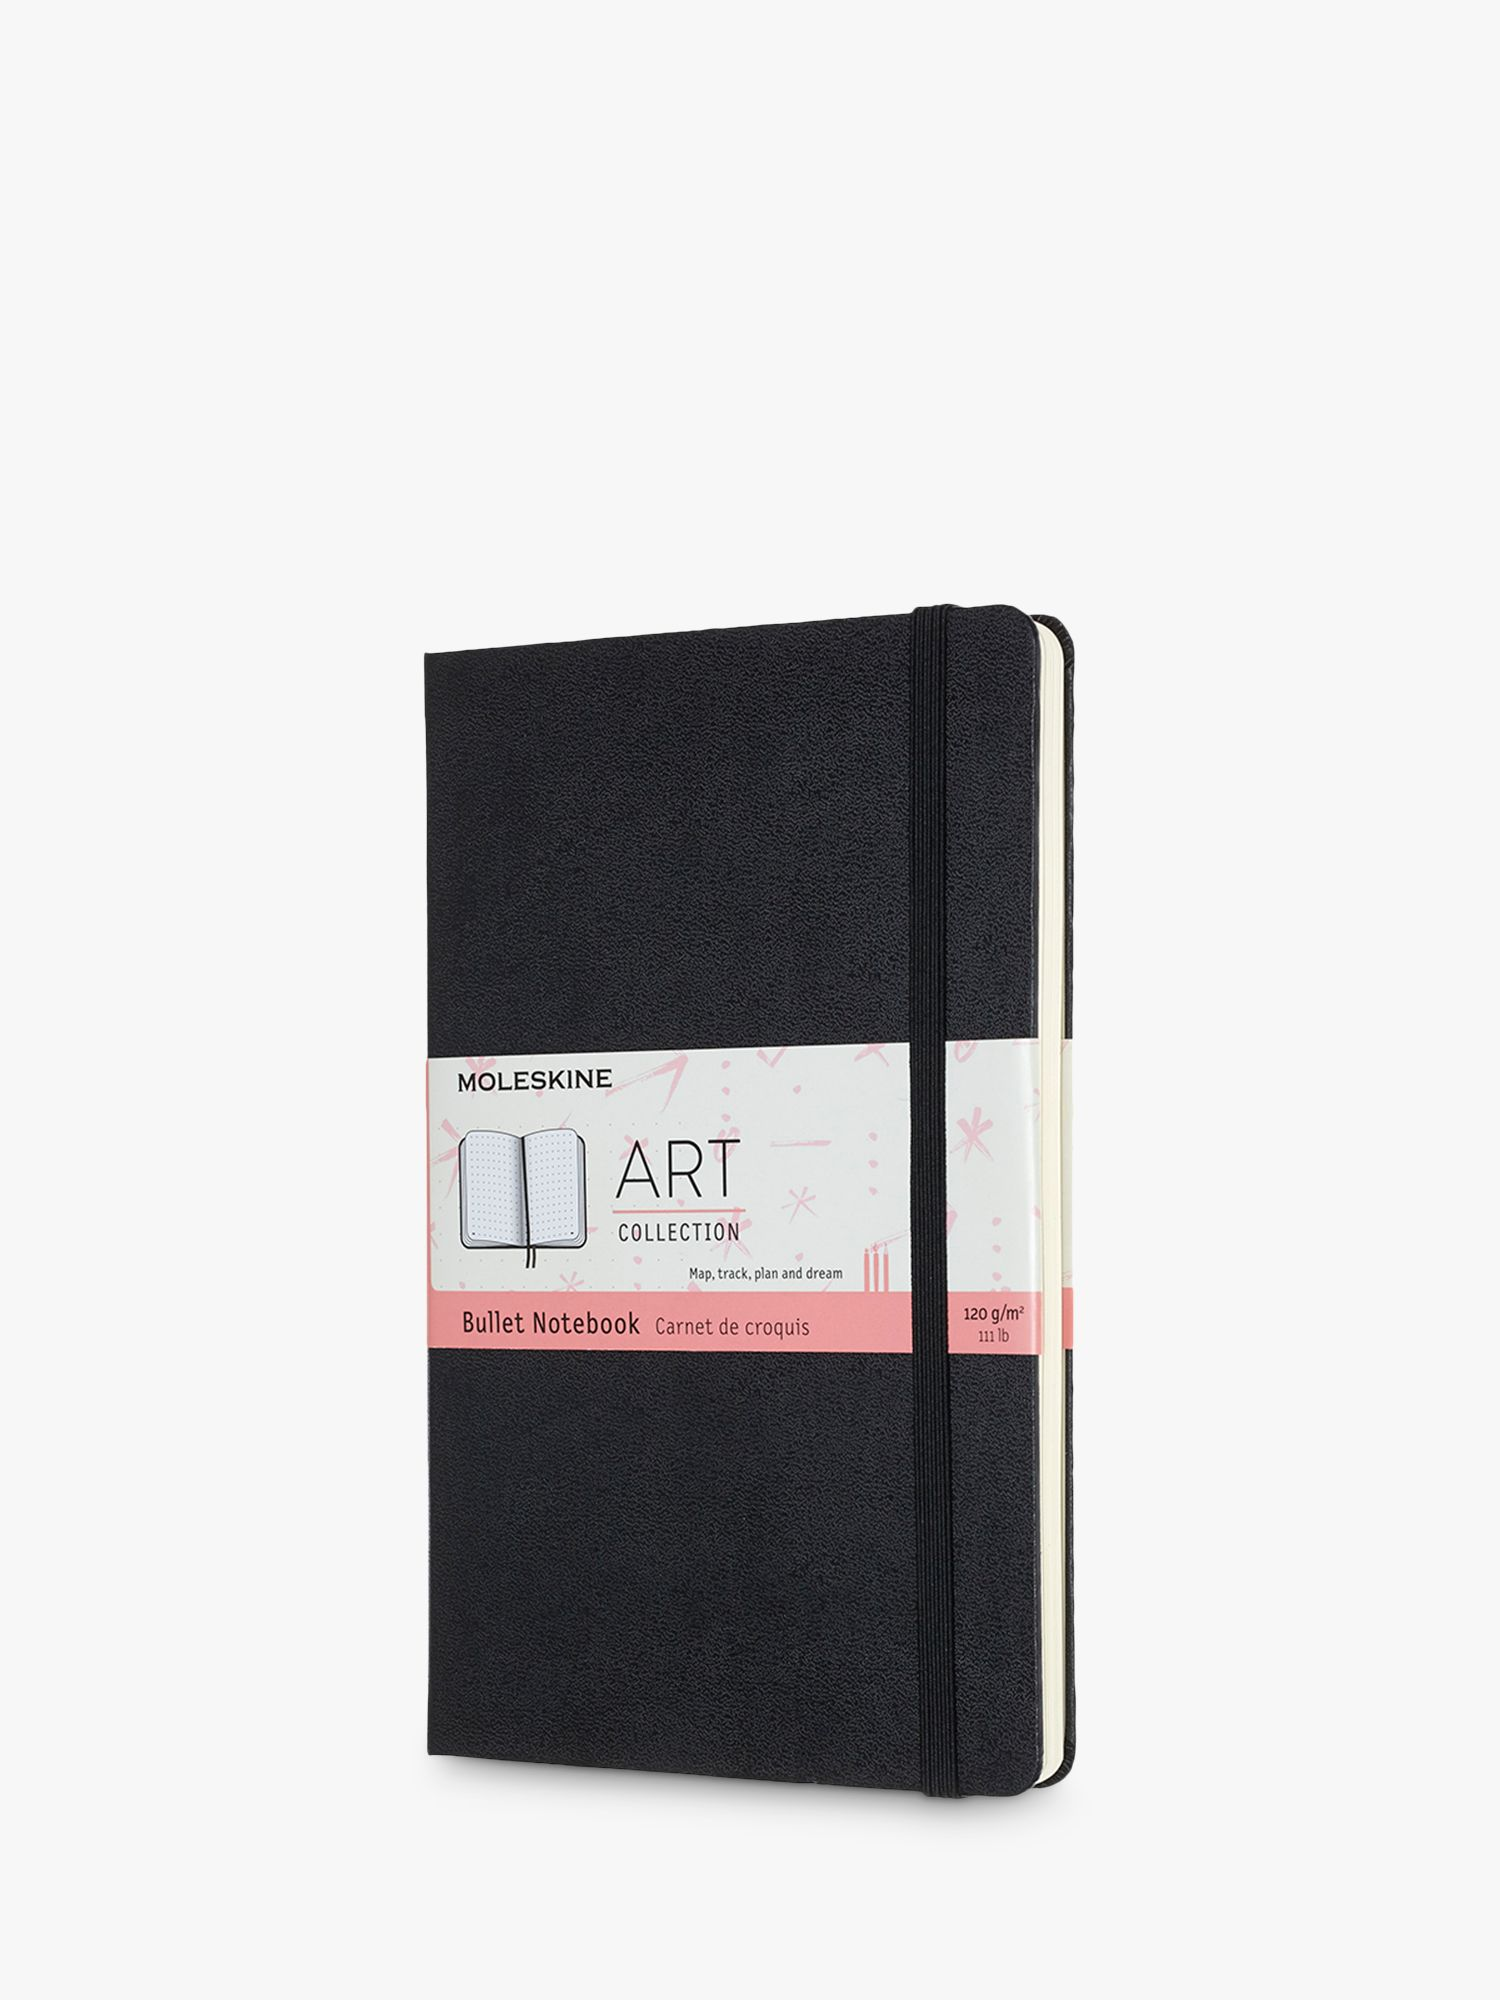 Moleskine Large Art Bullet Notebook, Black